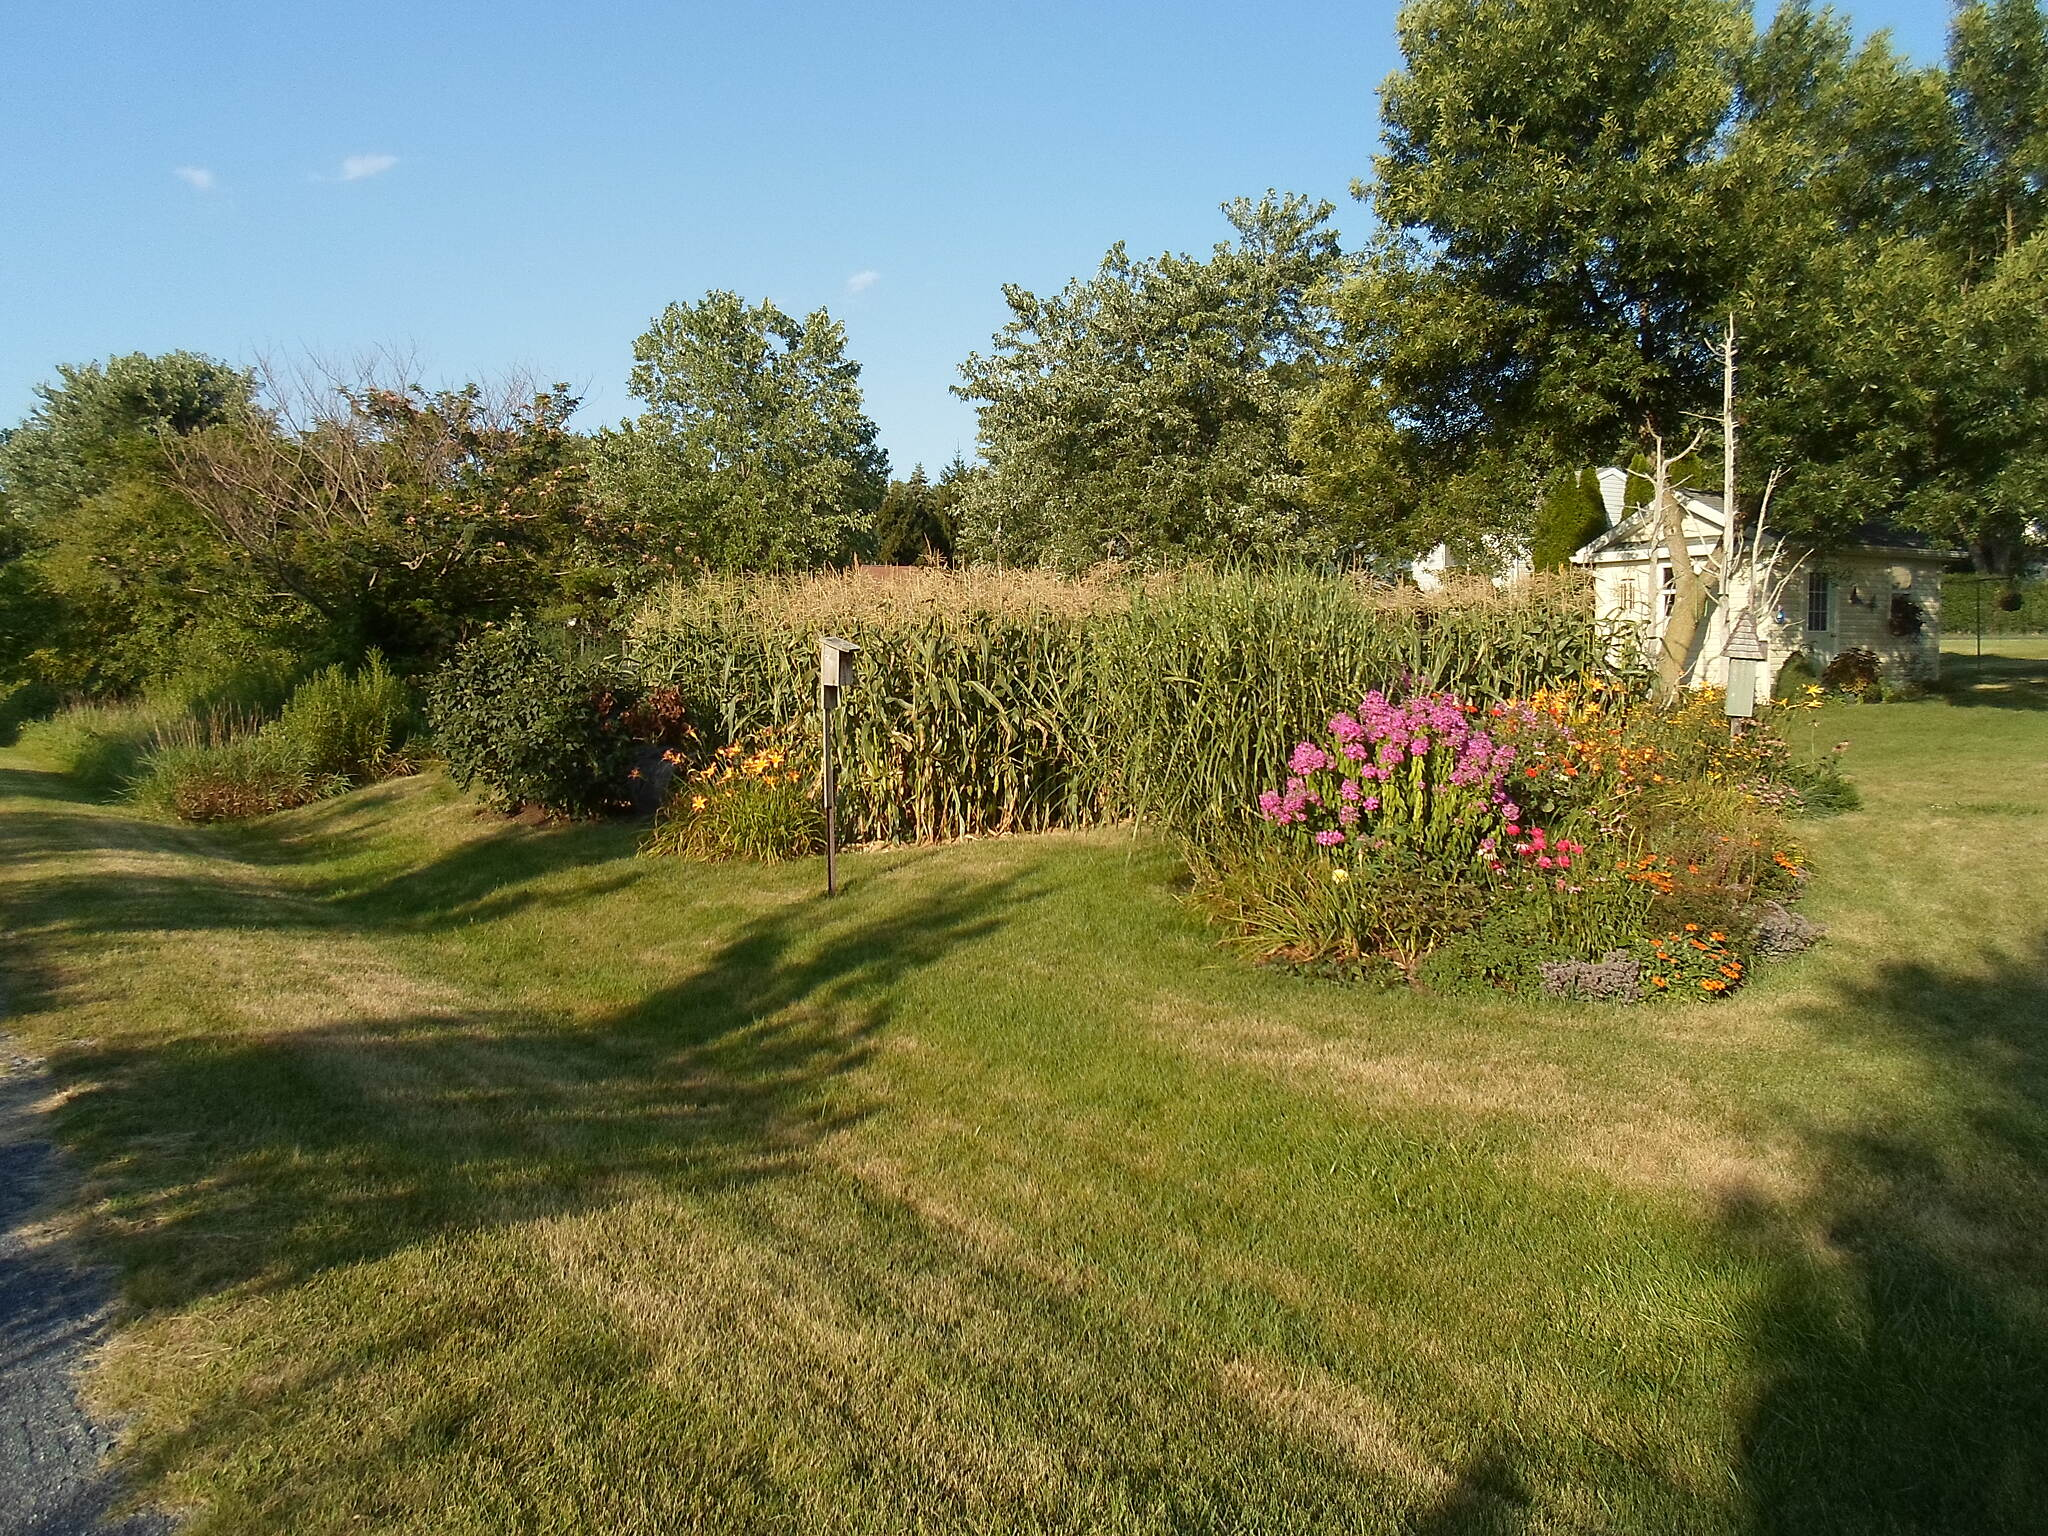 Lebanon Valley Rail-Trail Lebanon Valley Rail Trail Backyards and gardens visible from the trail, fittingly in Lawn. Taken Aug. 2015.